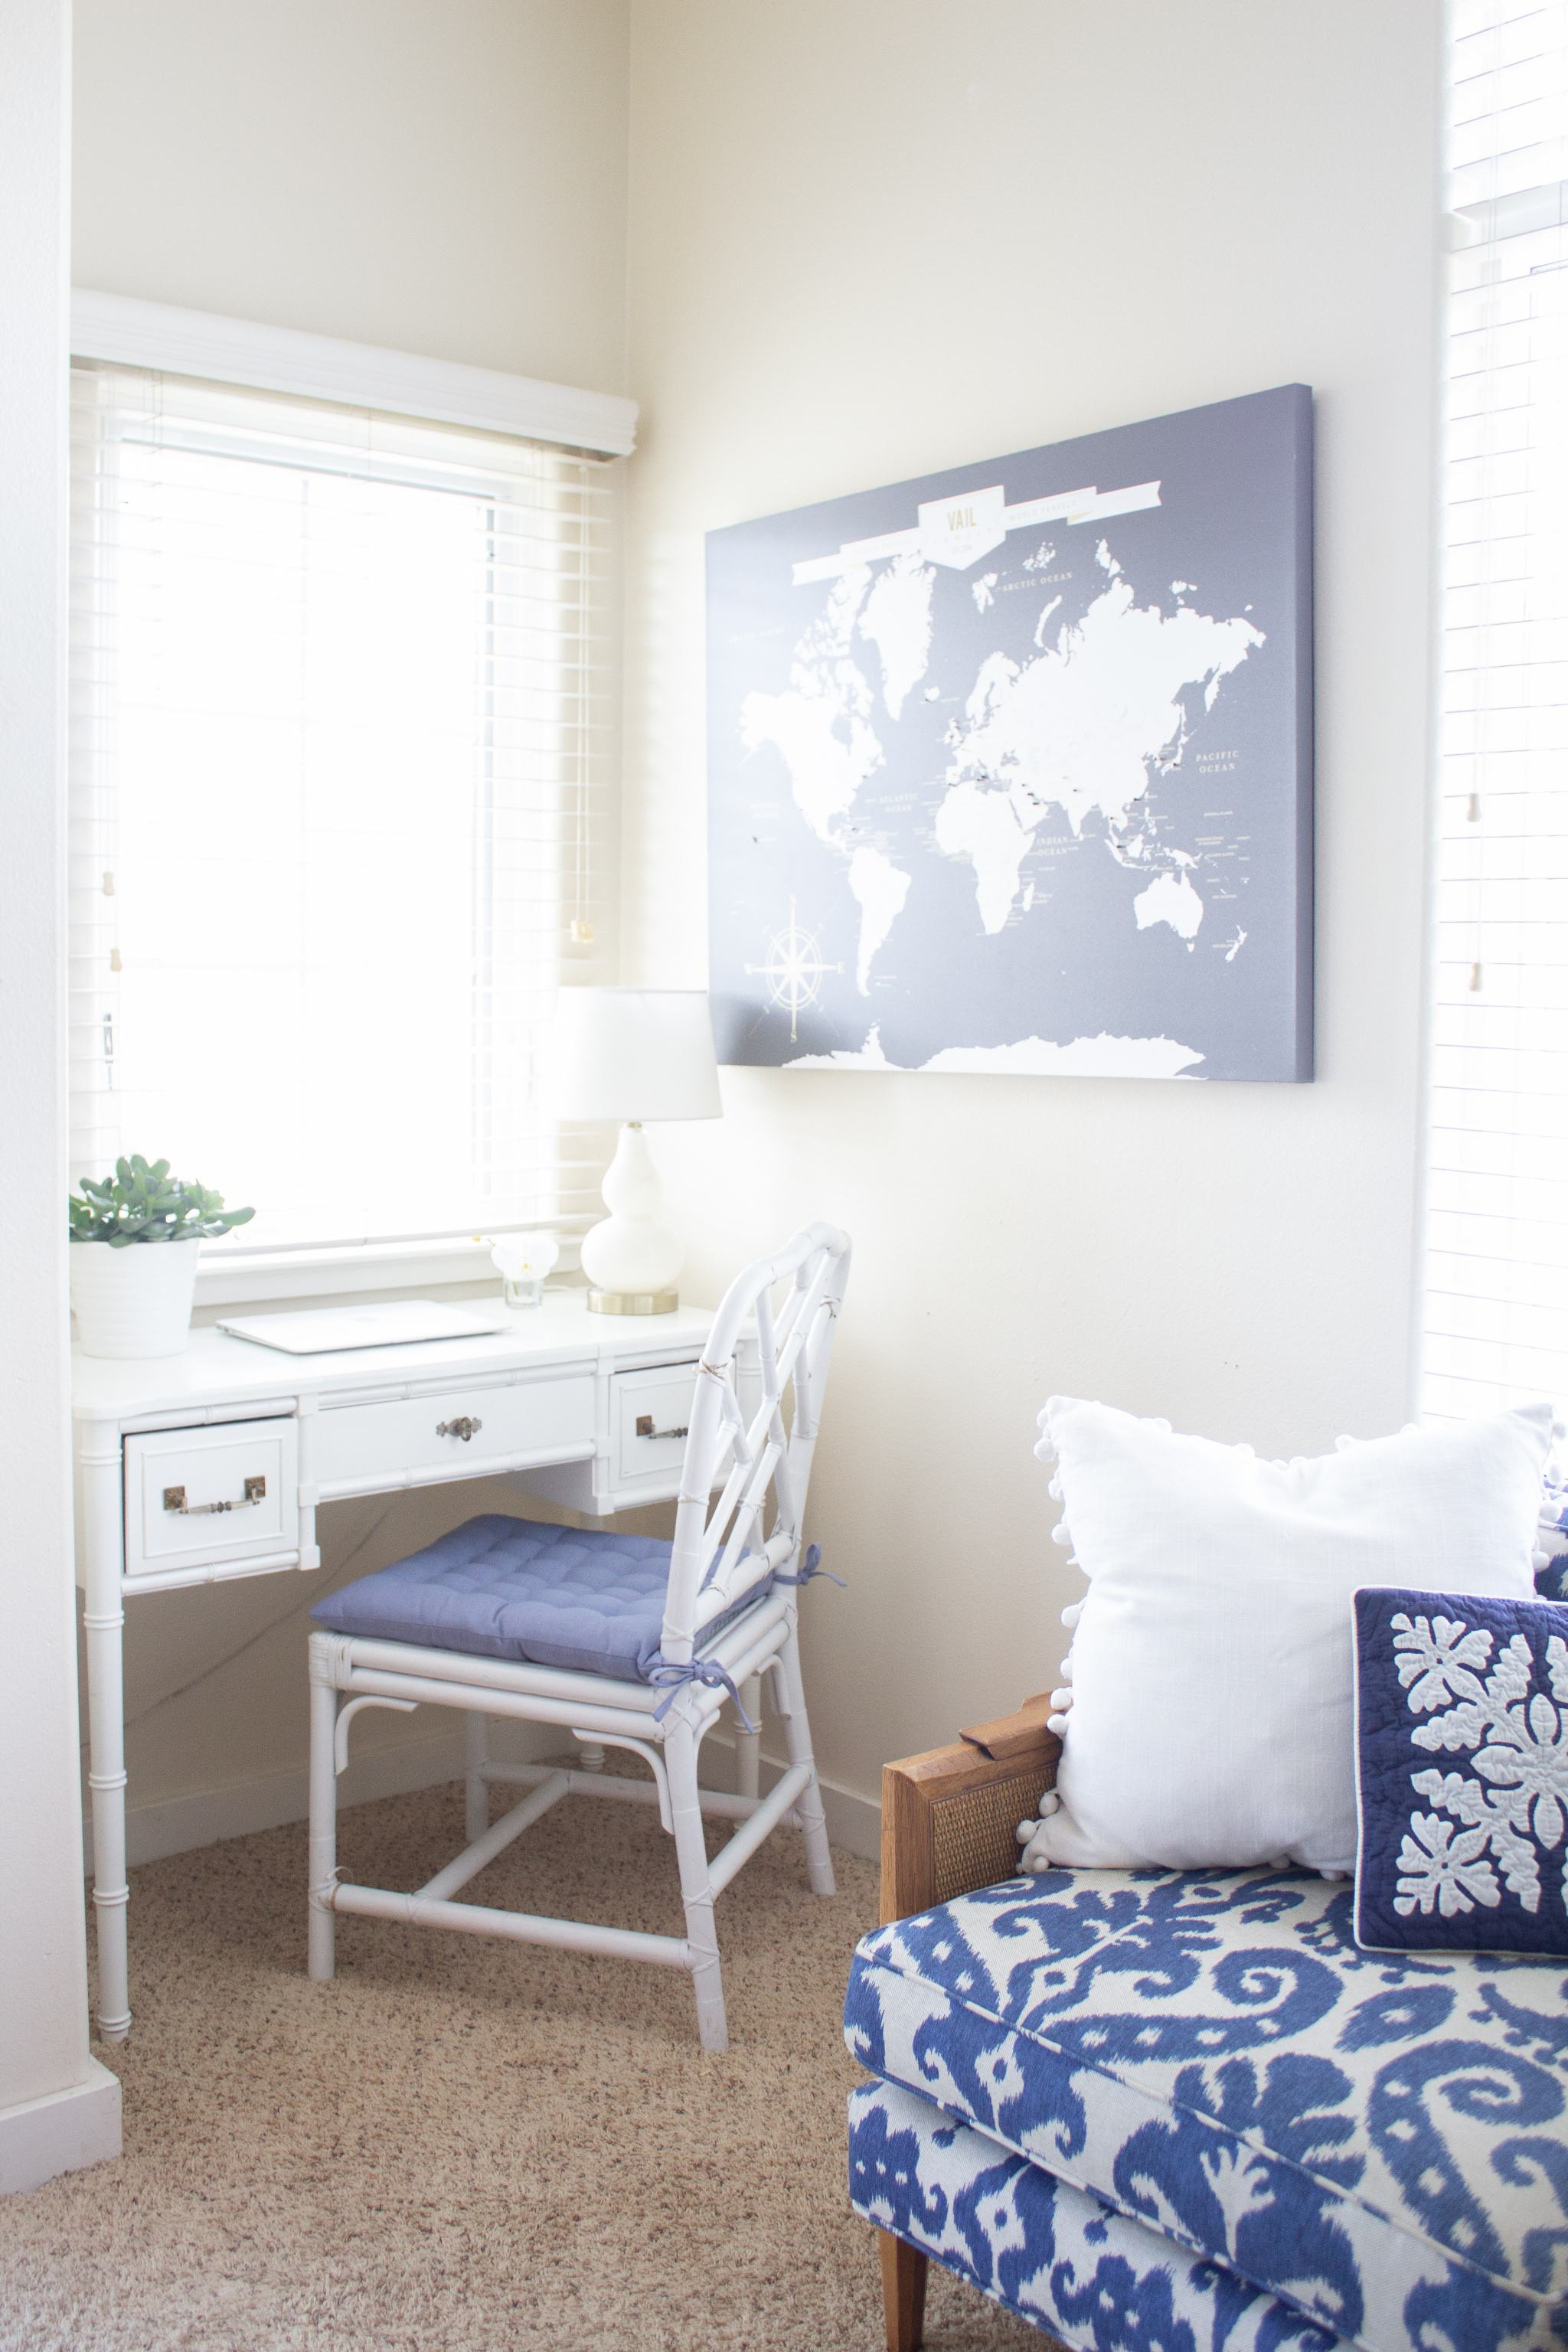 faux bamboo desk - Lacefield's Marrakesh Indigo Batik - faux bamboo vanity - chinese chippendale chair - chinese chippendale dining chair - writing nook - blue seat cushion - push pin travel map - blue and white sofa - vintage sofa - ikat sofa - home office